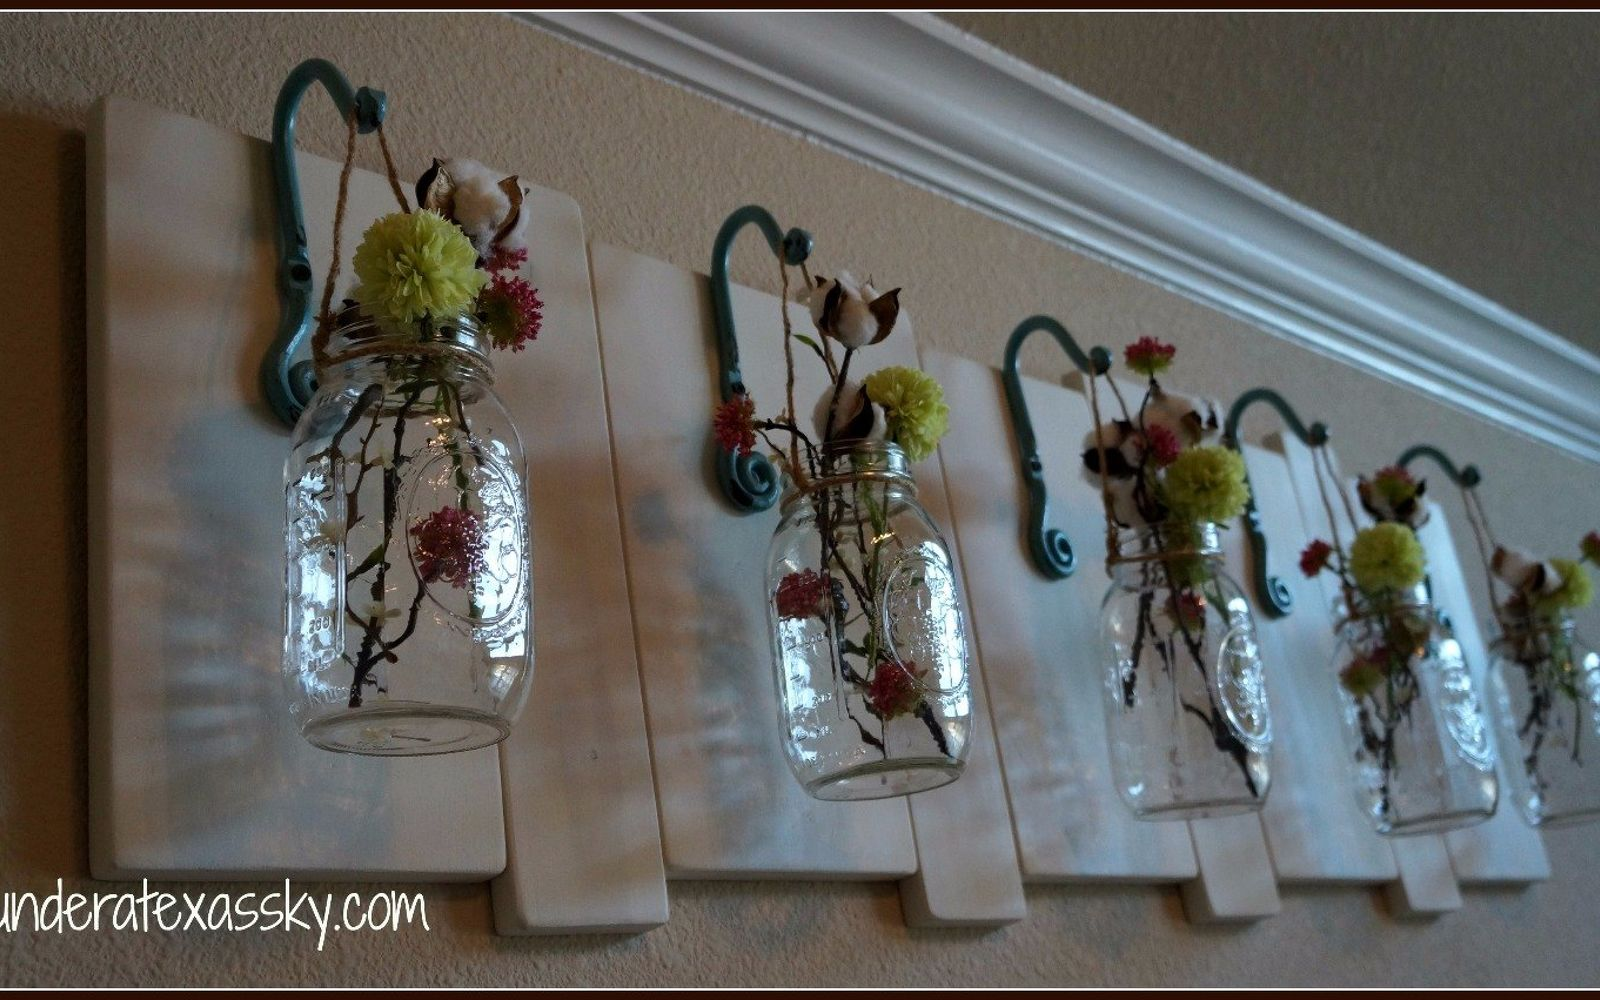 10 lovely ways to include mason jars in your home decor hometalk fill freshly clipped flowers in a hanging jar